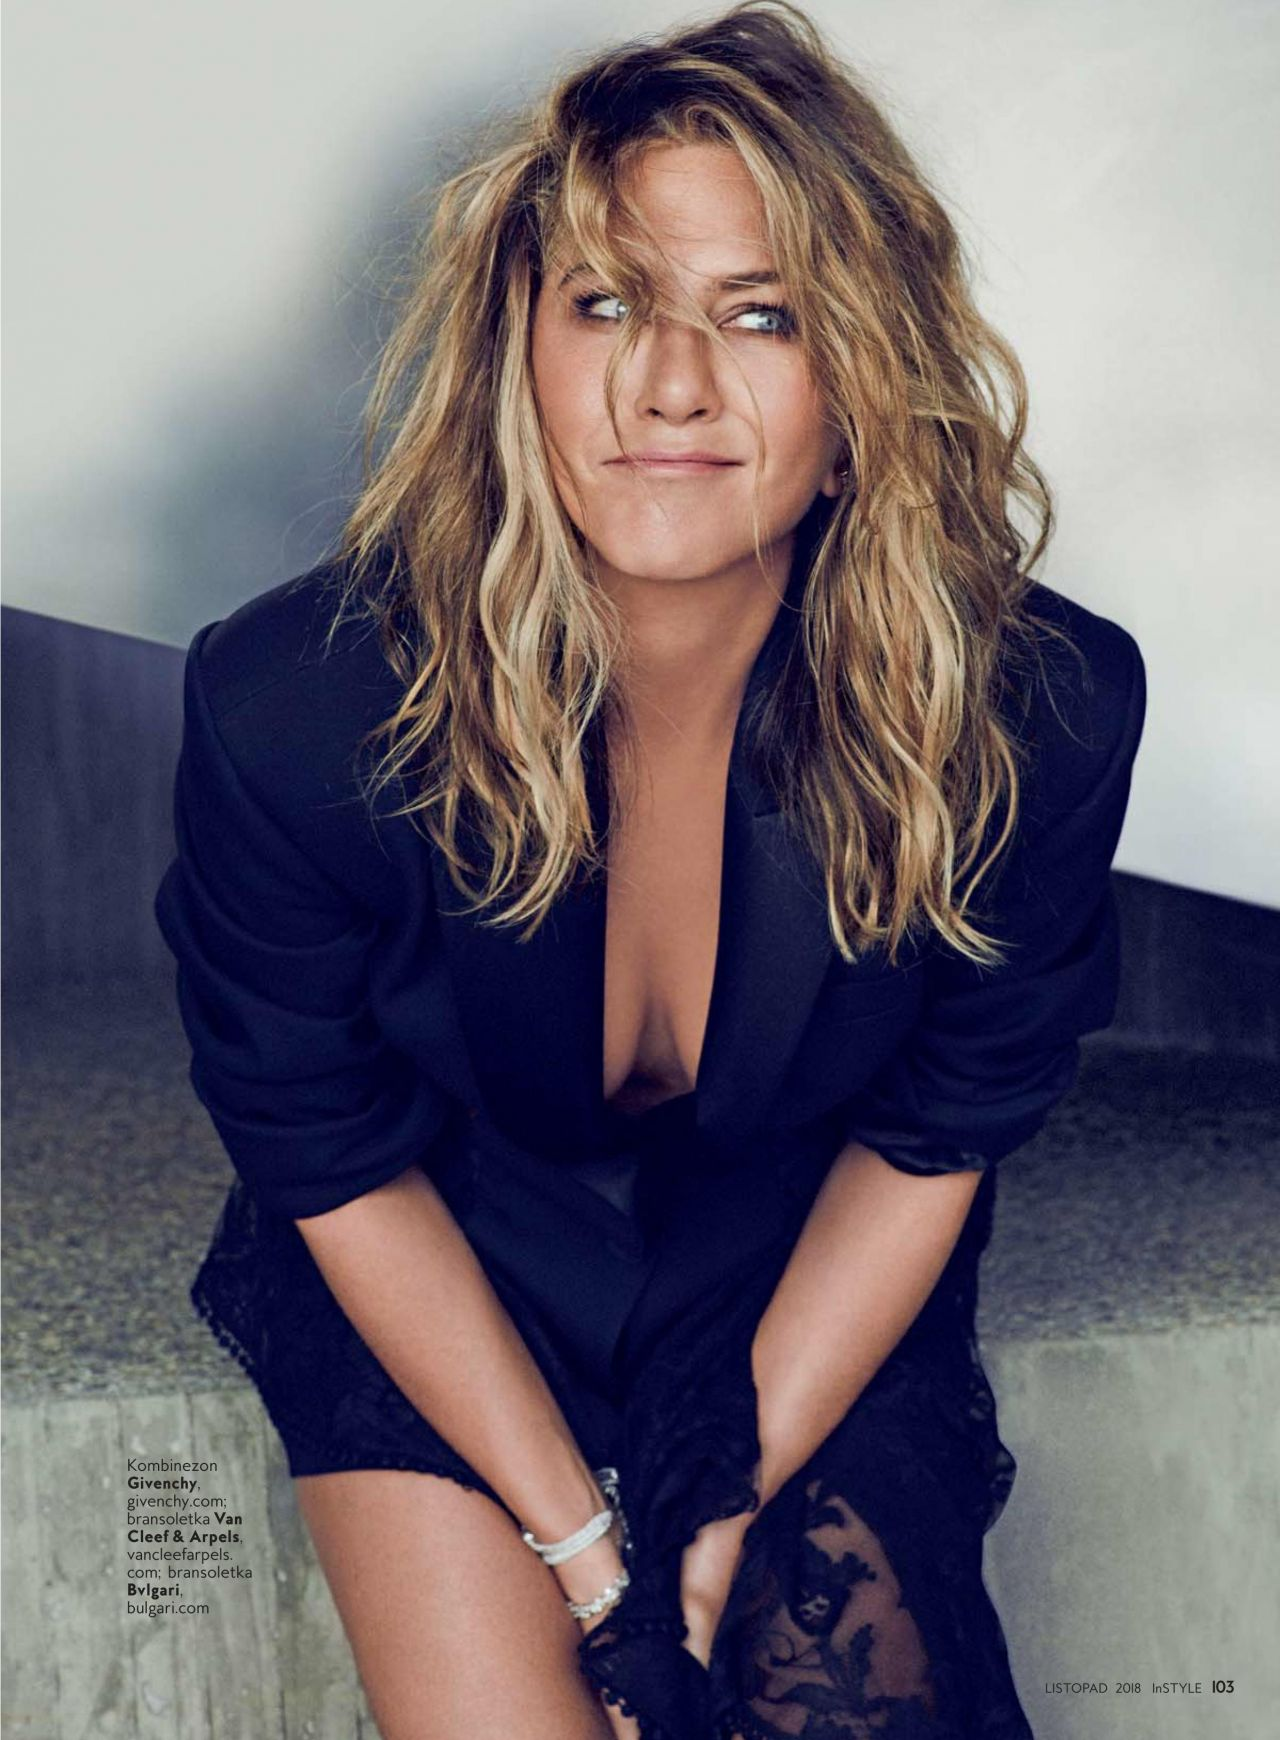 https://celebmafia.com/wp-content/uploads/2018/10/jennifer-aniston-instyle-poland-november-2018-issue-0.jpg